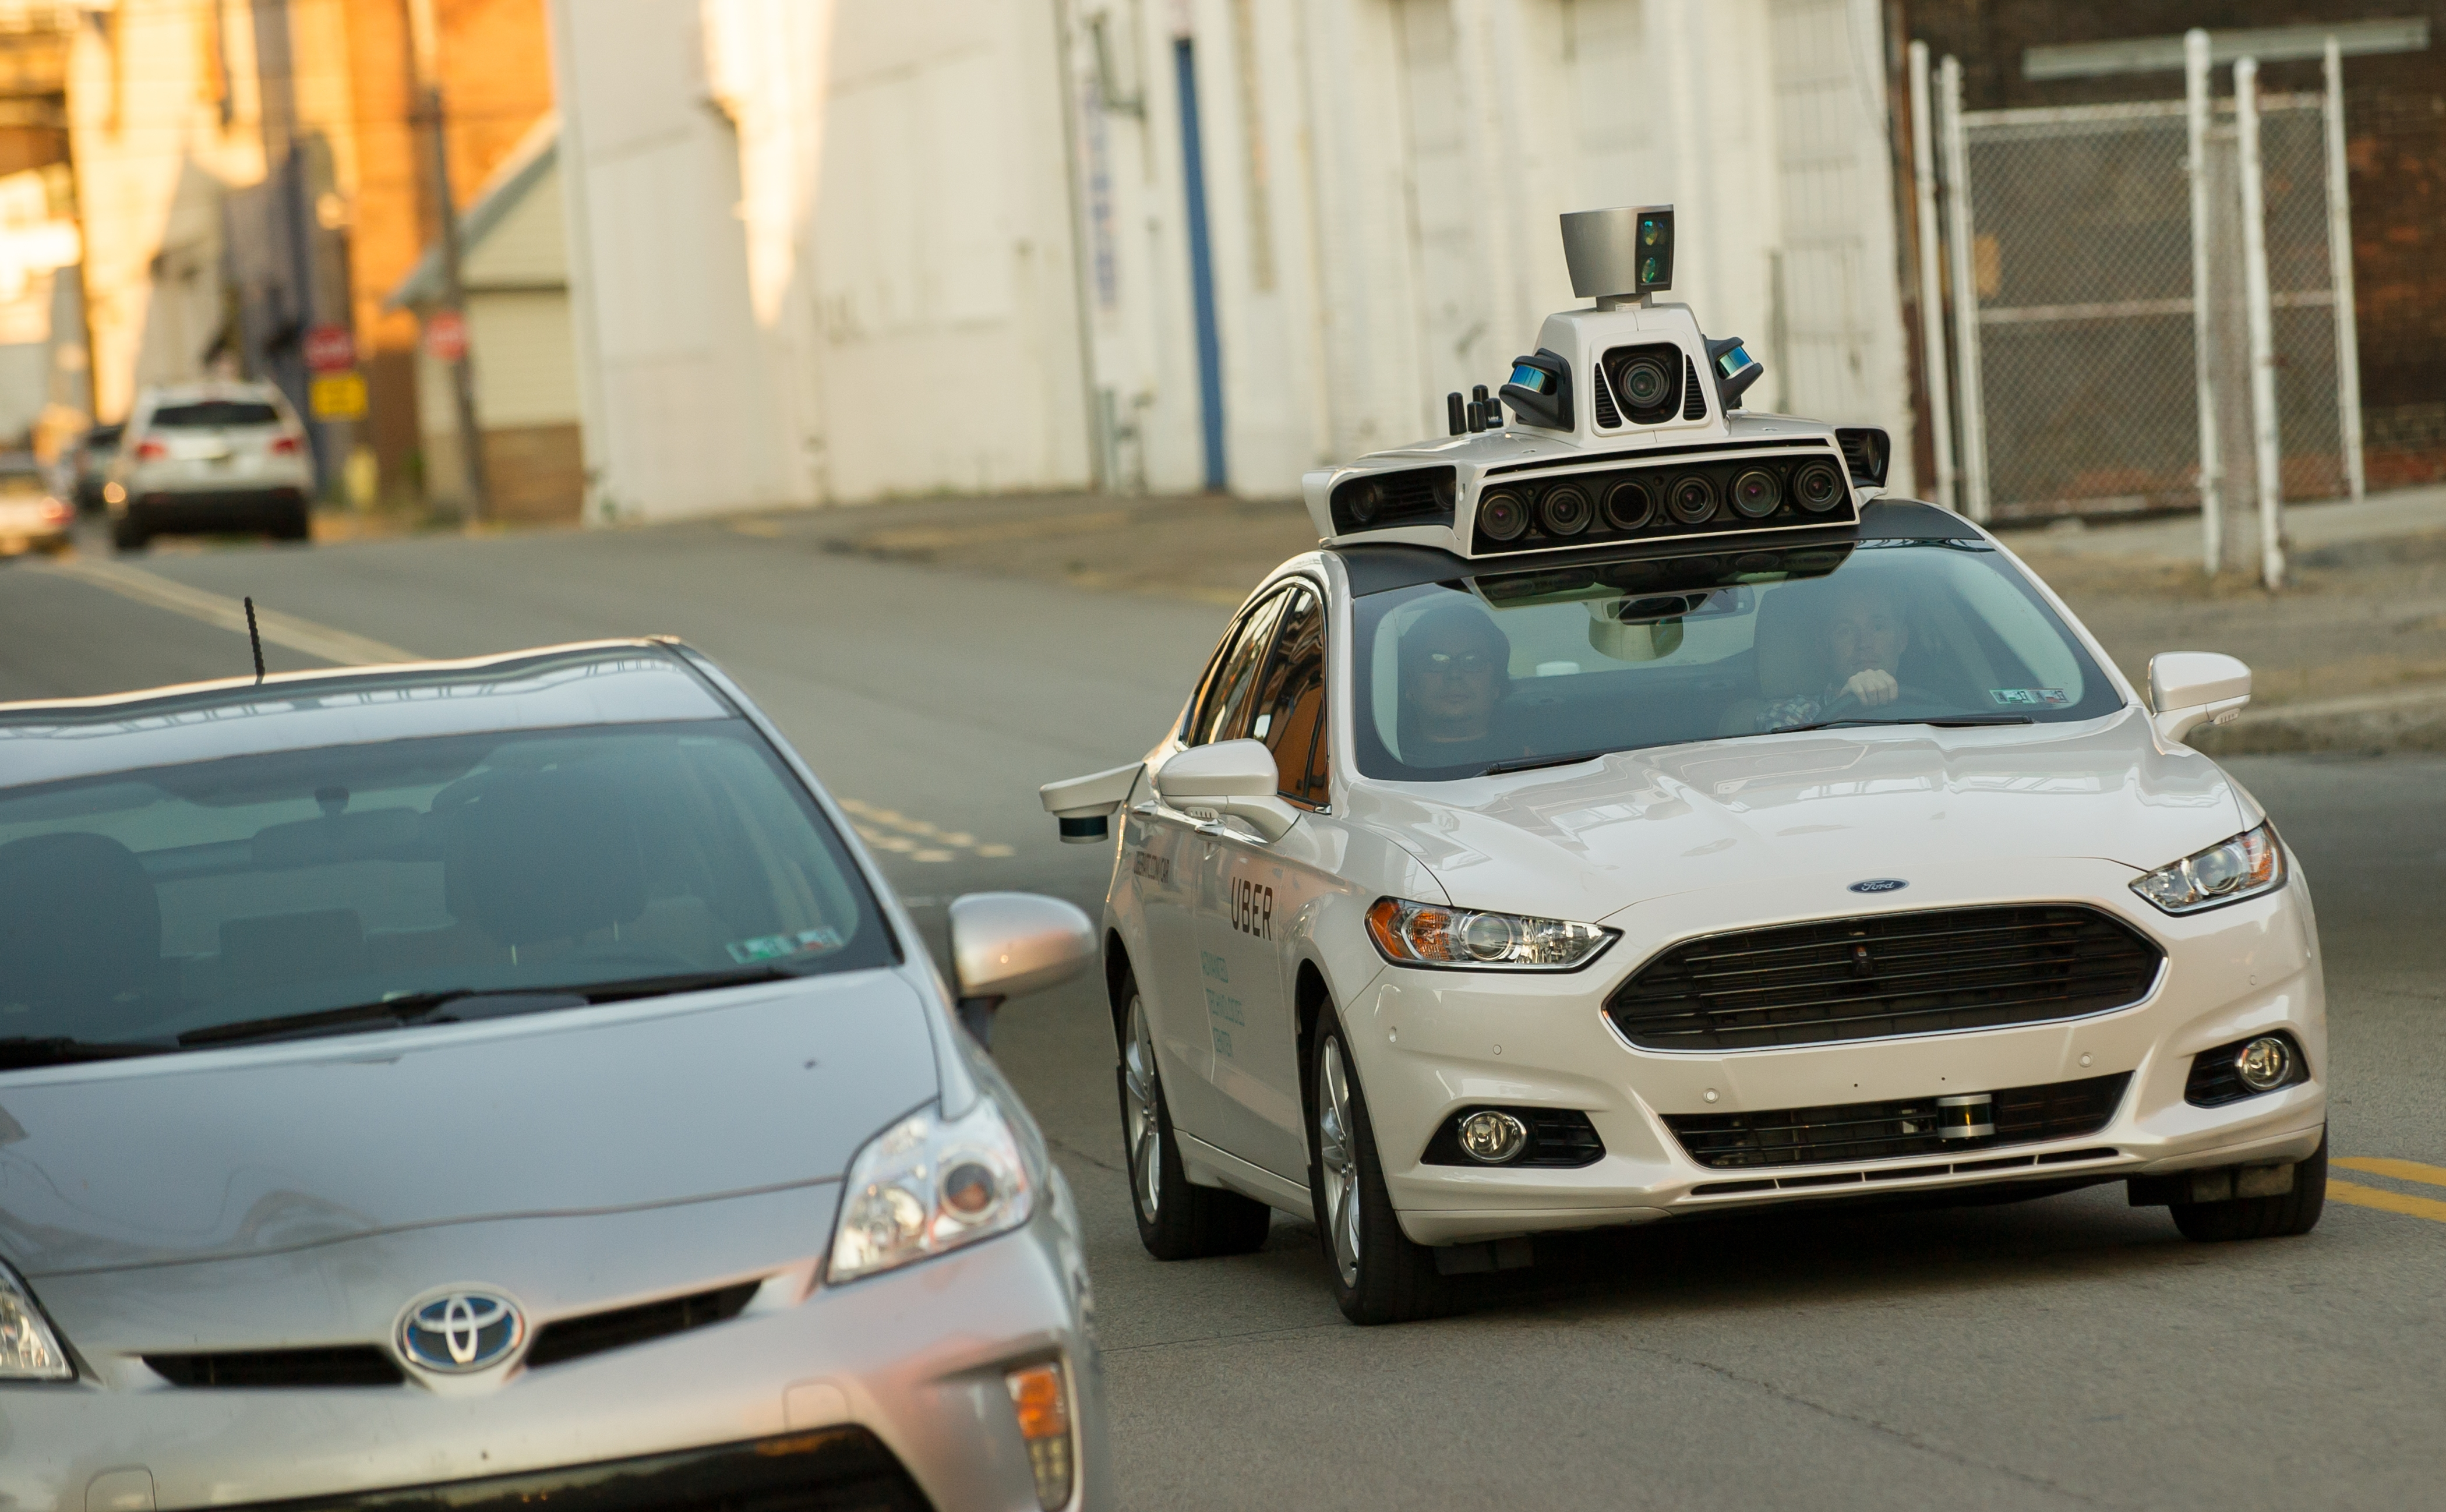 Uber is testing driverless cars, including this Ford Fusion, on the streets of Pittsburgh. (Getty Images)